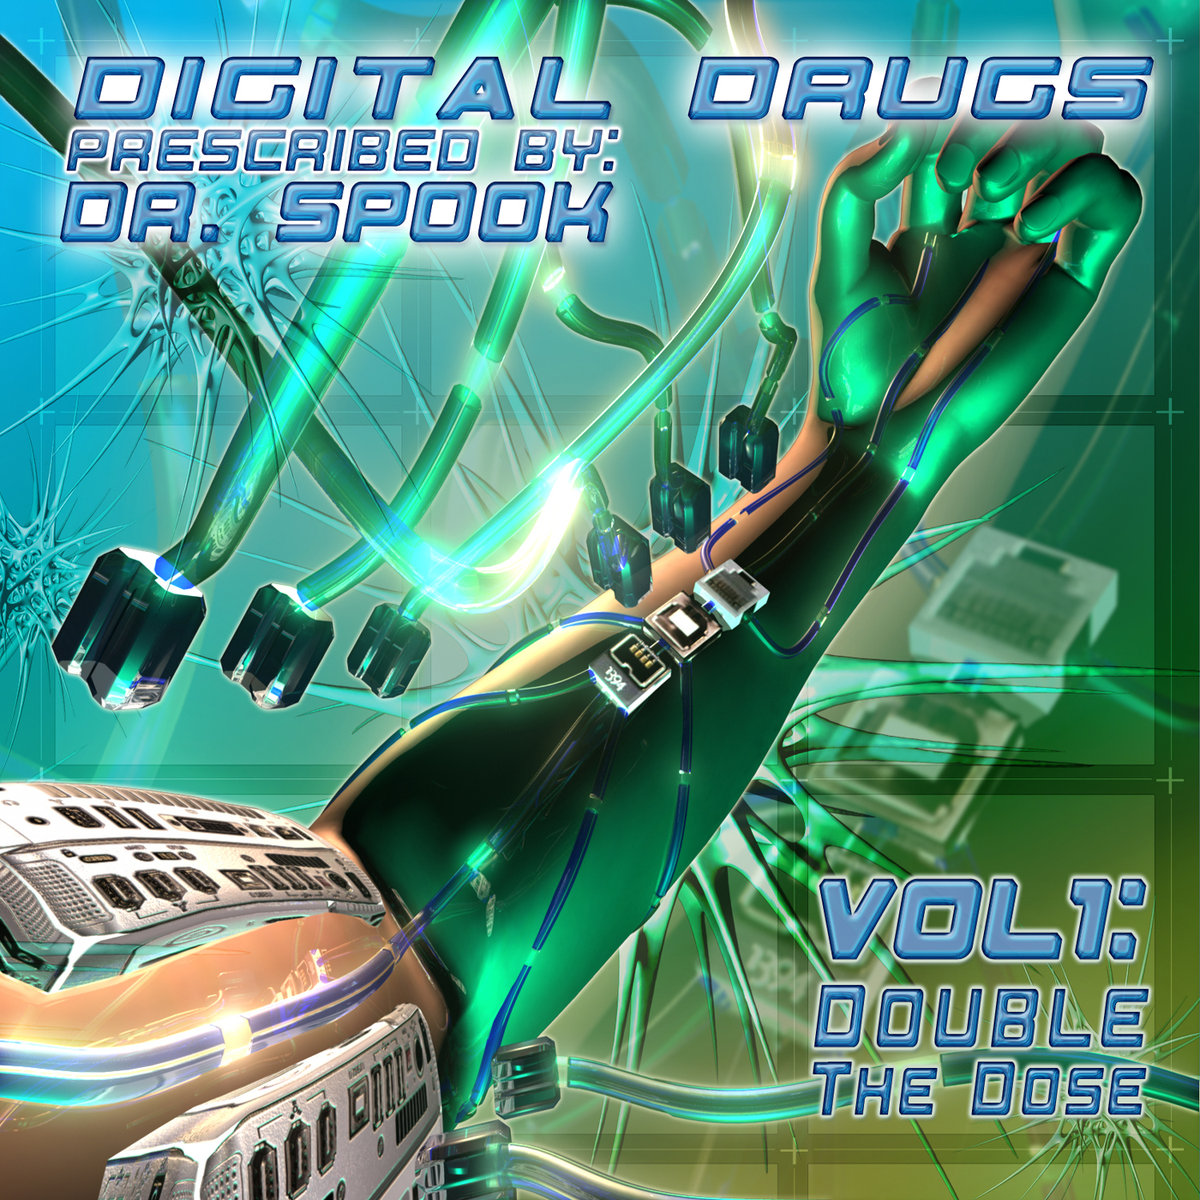 Tricossoma - Voices From The Darkness @ 'Various Artists - Digital Drugs Vol.1: Double the Dose (Prescribed by Dr. Spook)' album (electronic, goa)